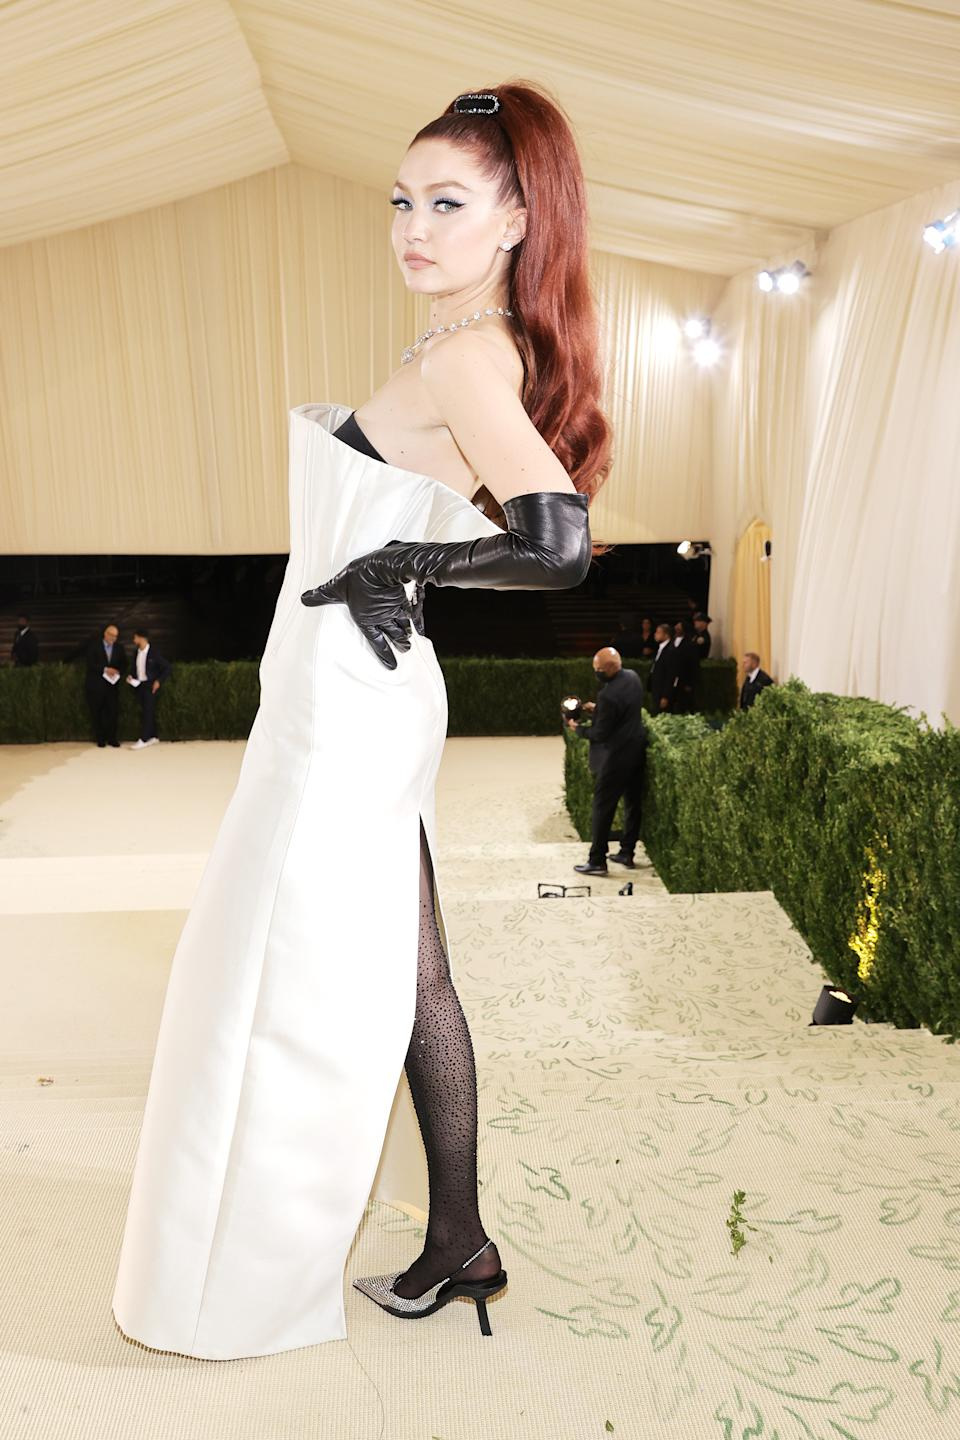 Some have likened Gigi Hadid's Met Gala look to Jessica Rabbit. (Getty Images)